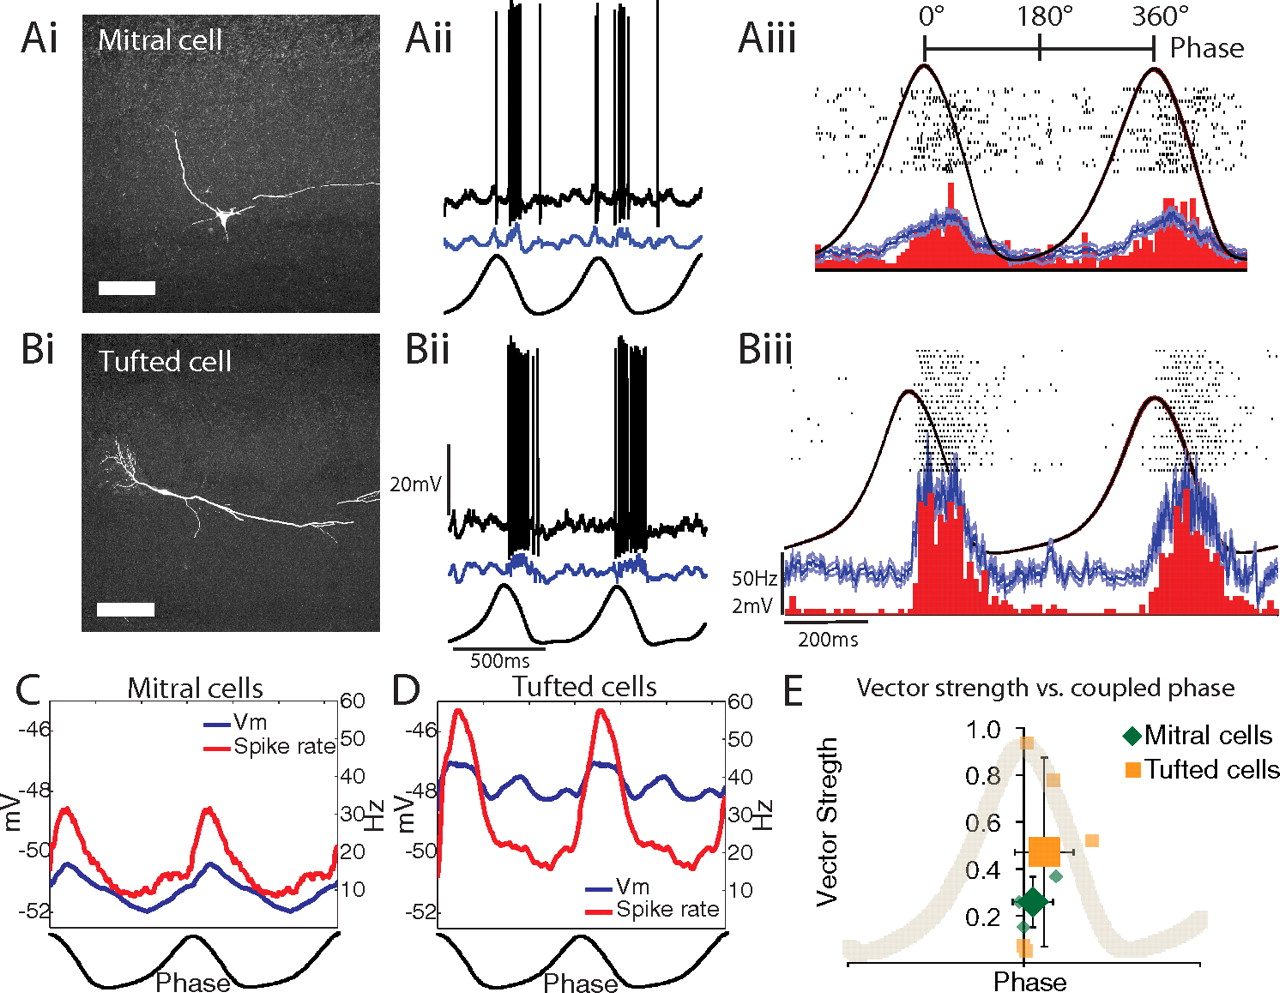 Respiration Drives Network Activity And Modulates Synaptic Bulbs In A Series Circuit Download Figure